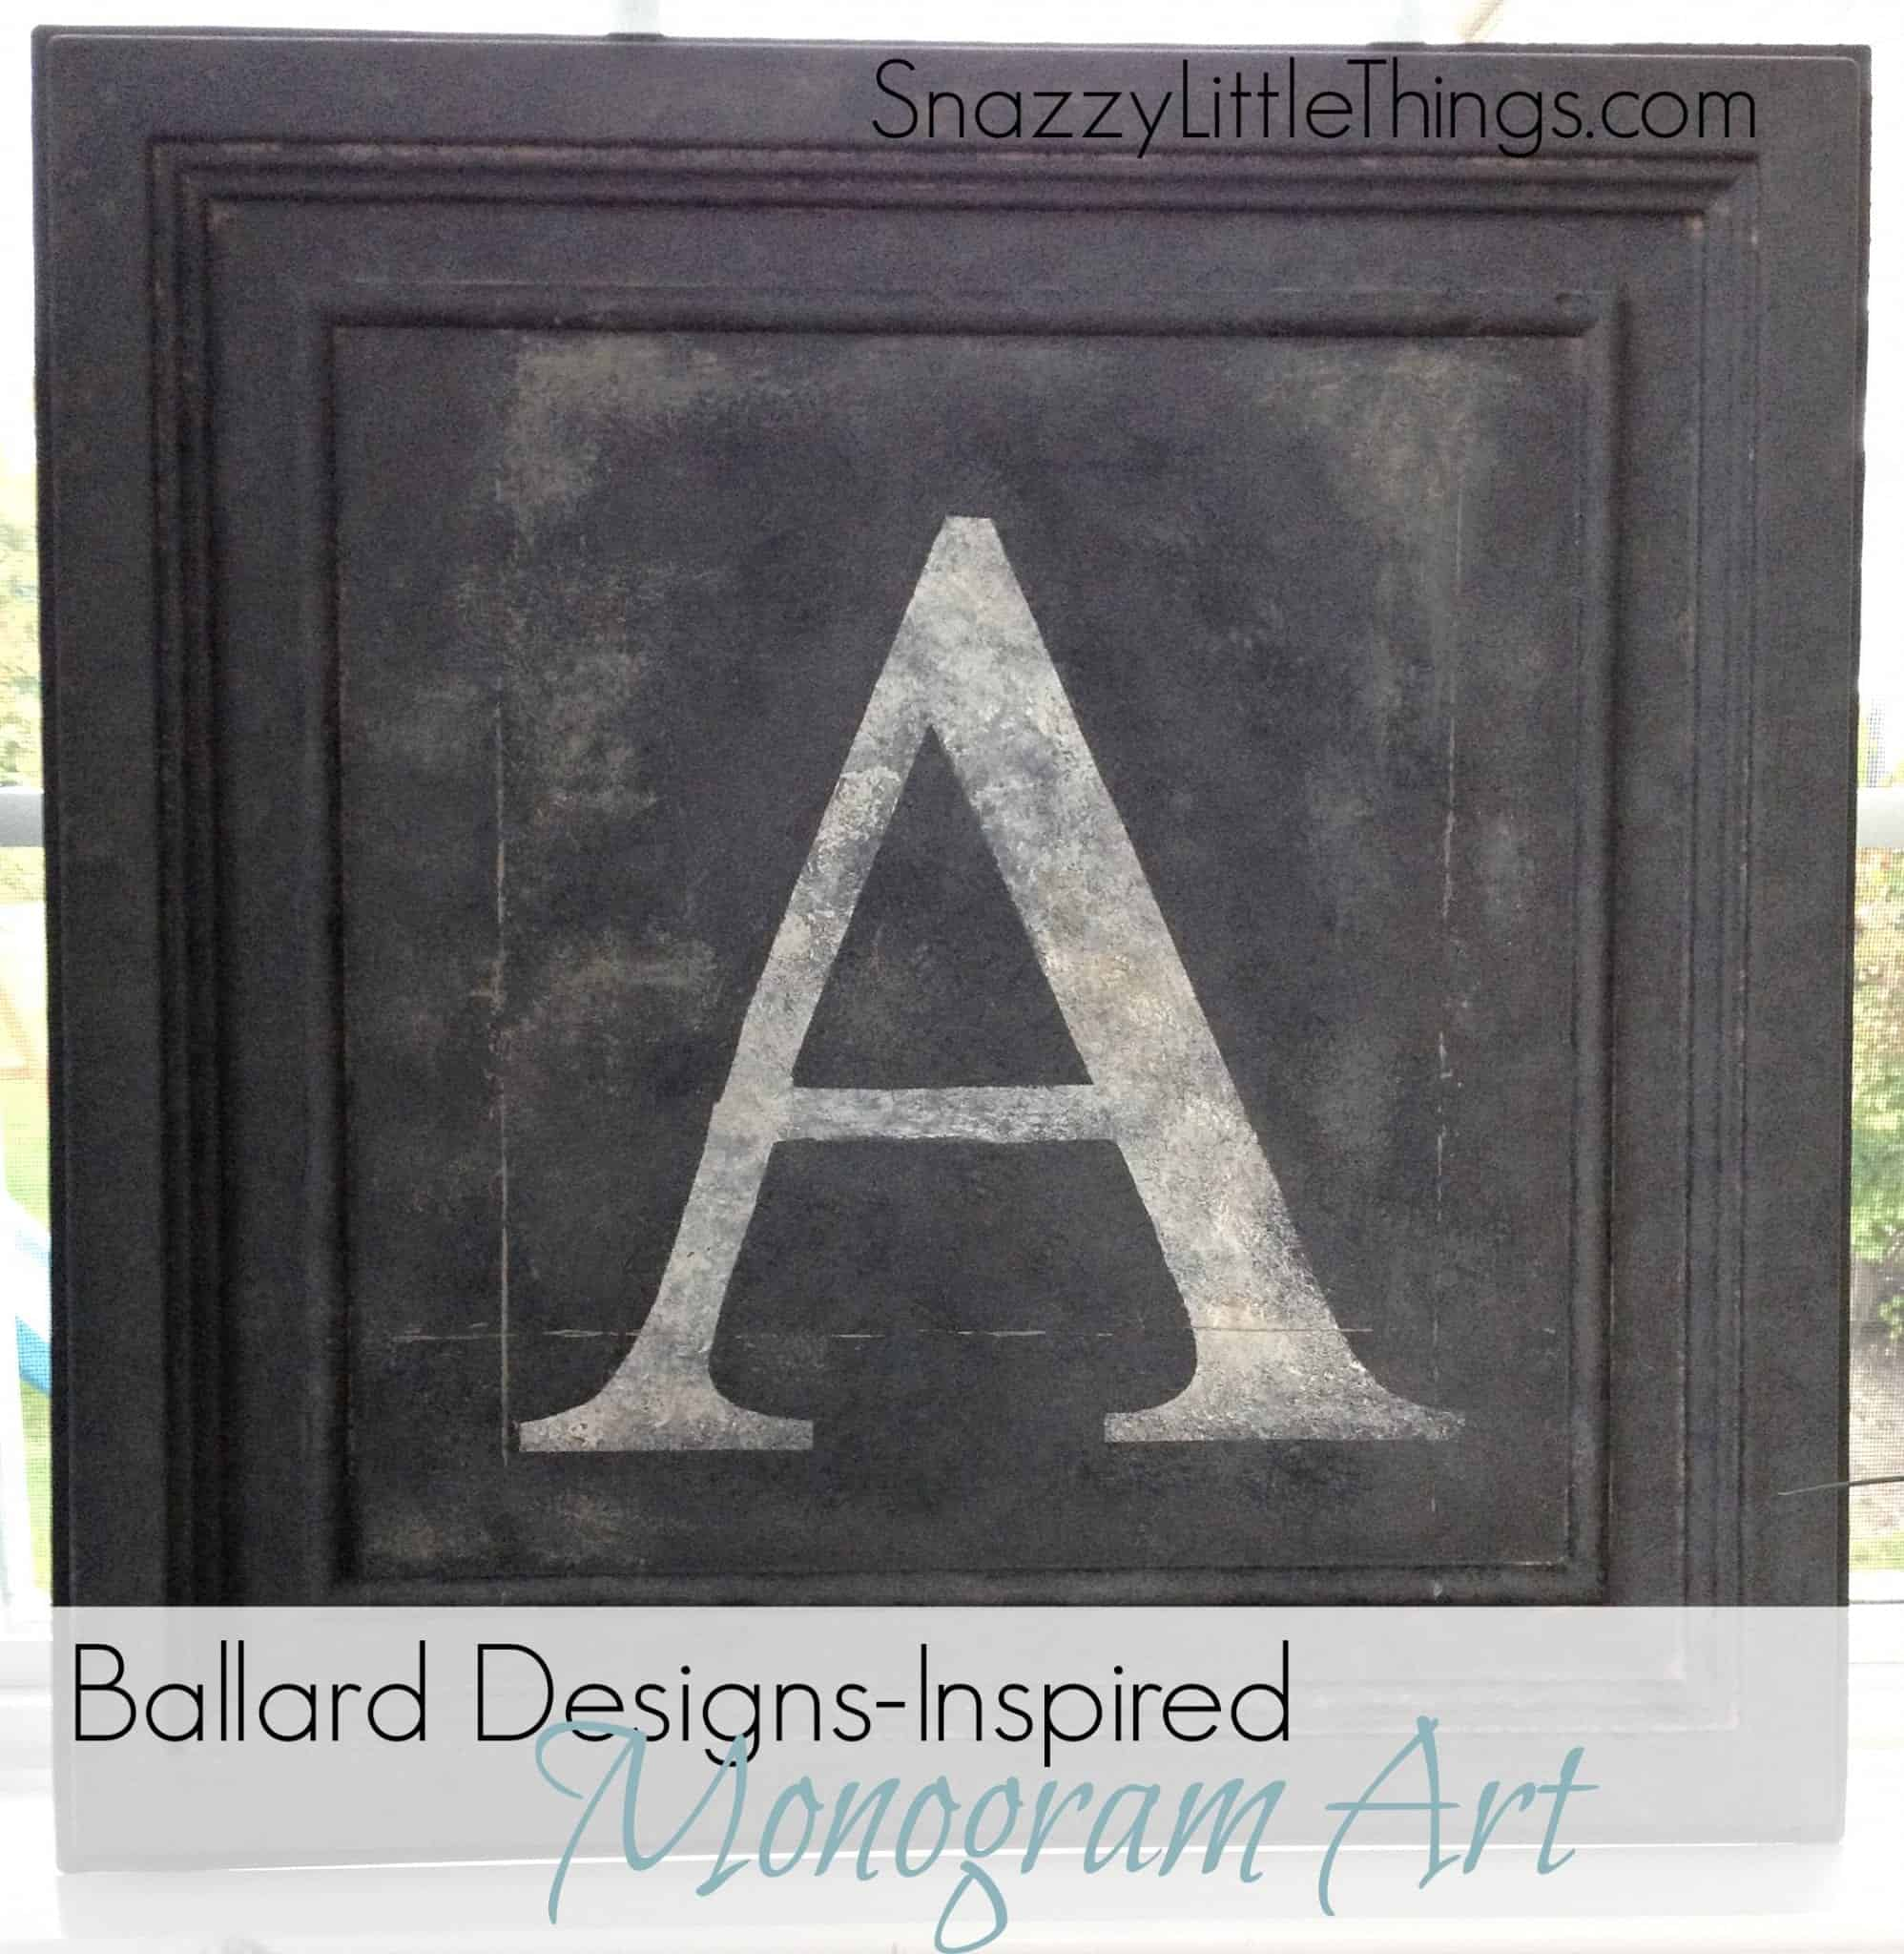 Above My DIY Version Of Ballard Designs Monogram Art 100 I Used Extra Paint Supplies Already Had At Home